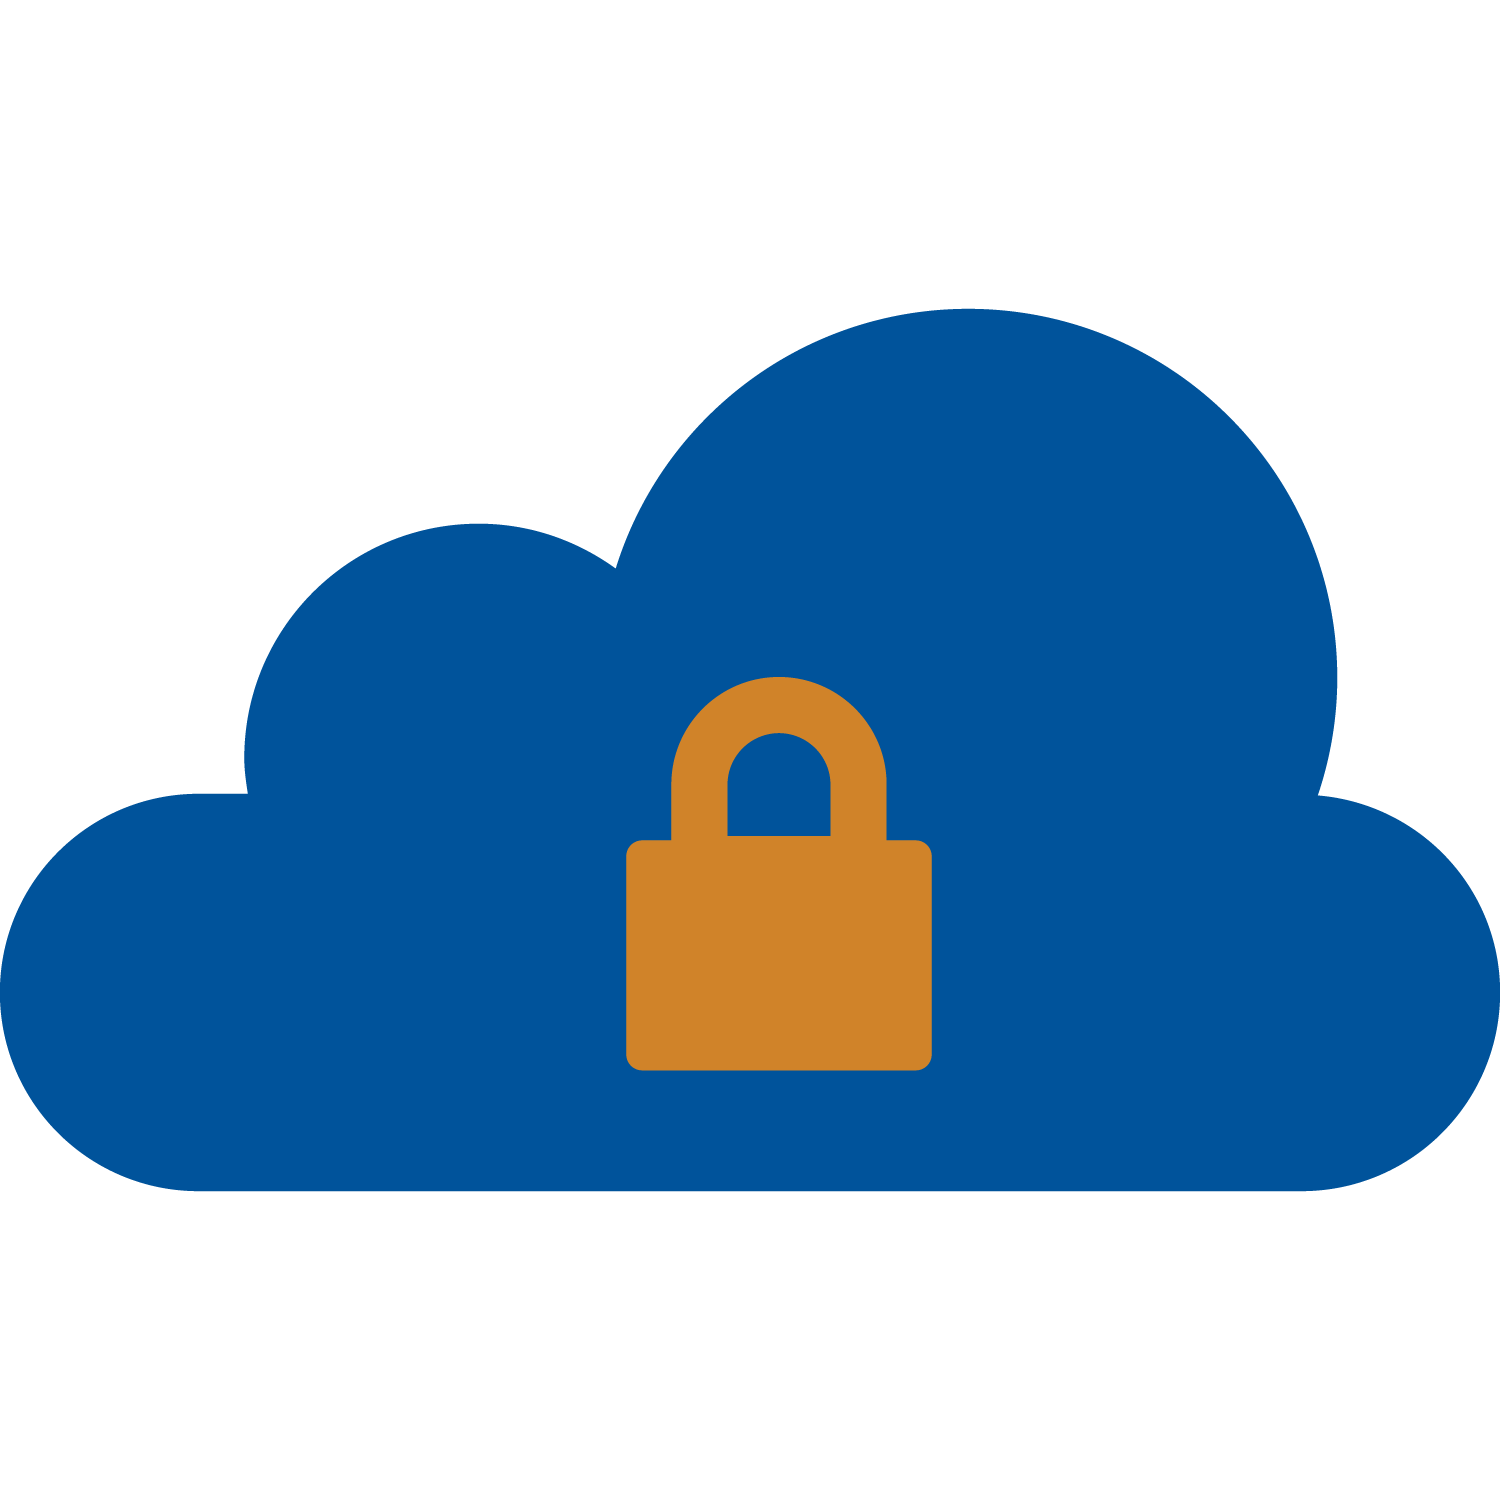 Blue cloud with a locked orange padlock